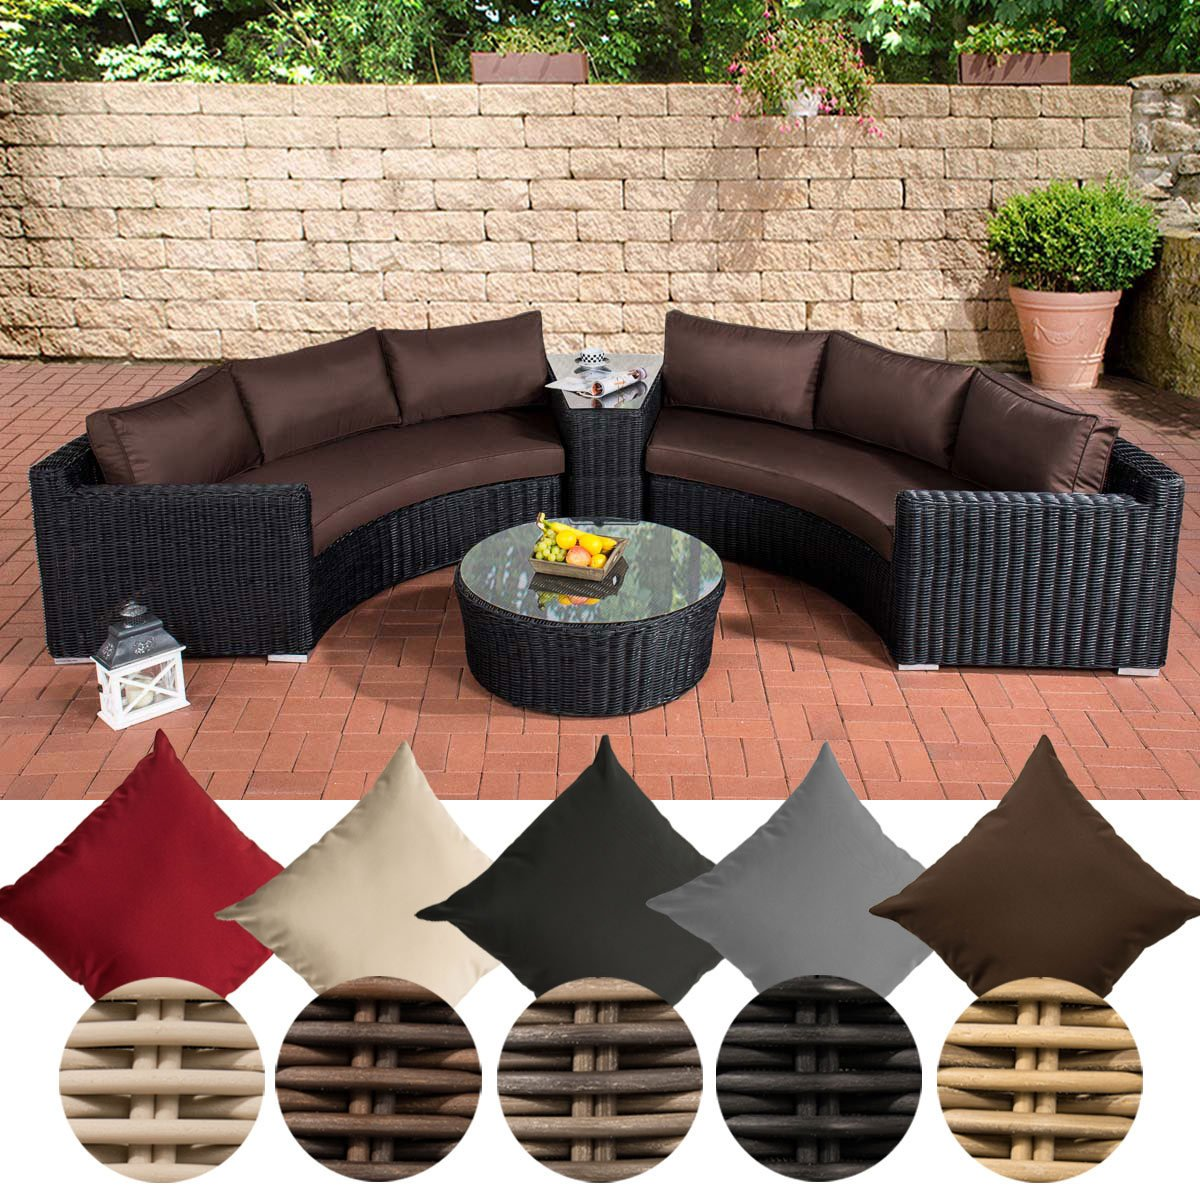 clp poly rattan garten lounge set rund barbados 2x 3er sofa glastisch rund 80 cm 6. Black Bedroom Furniture Sets. Home Design Ideas